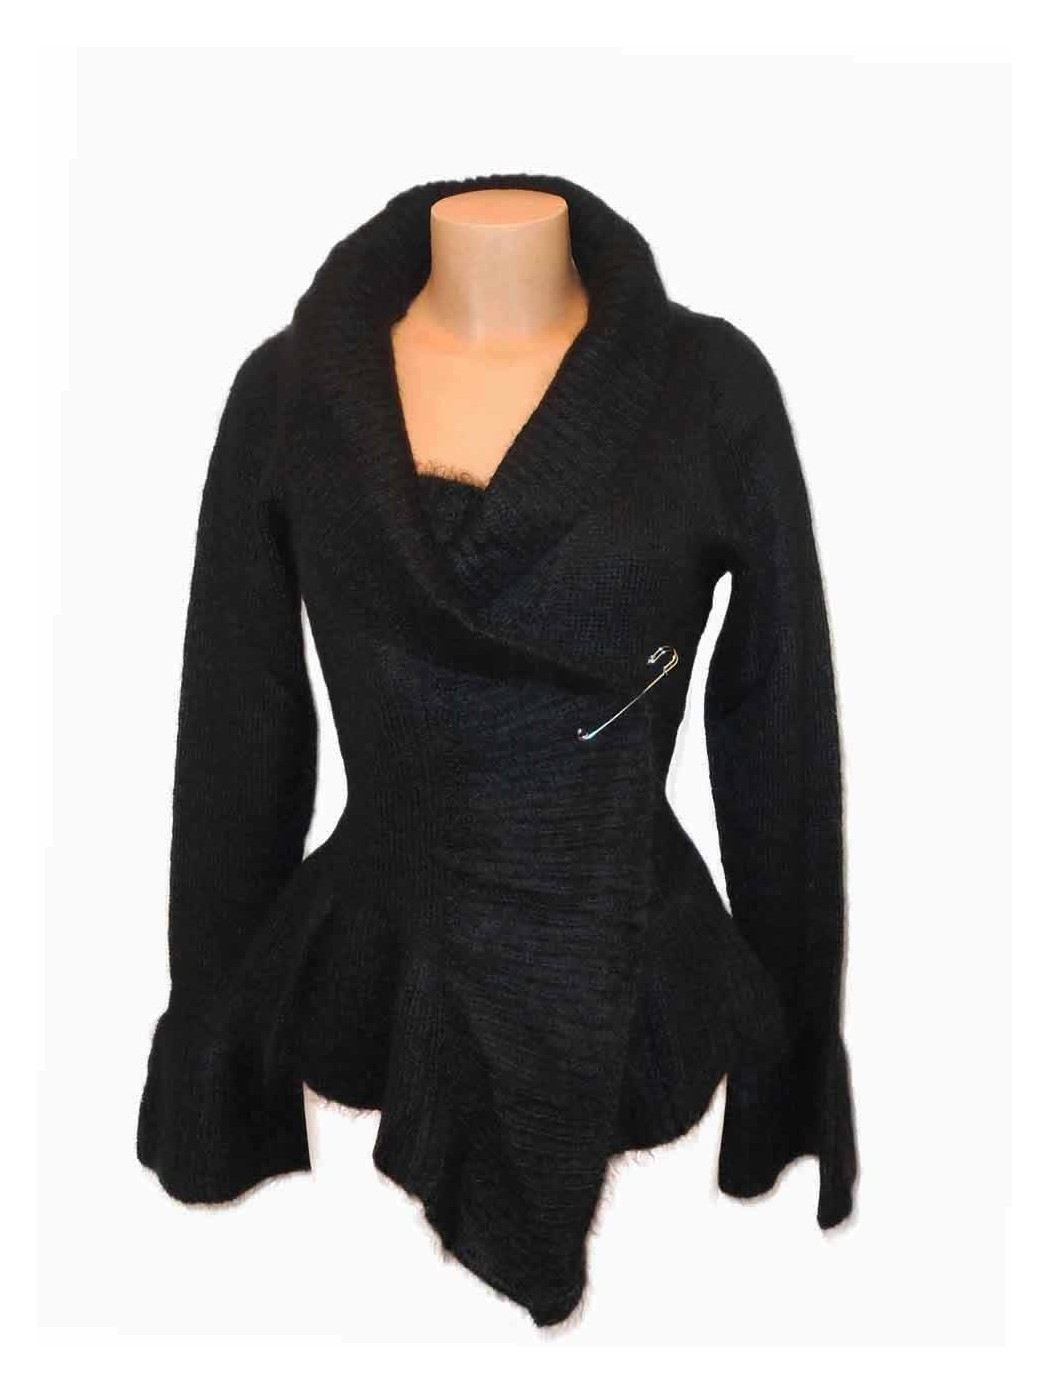 Black wool twin-set